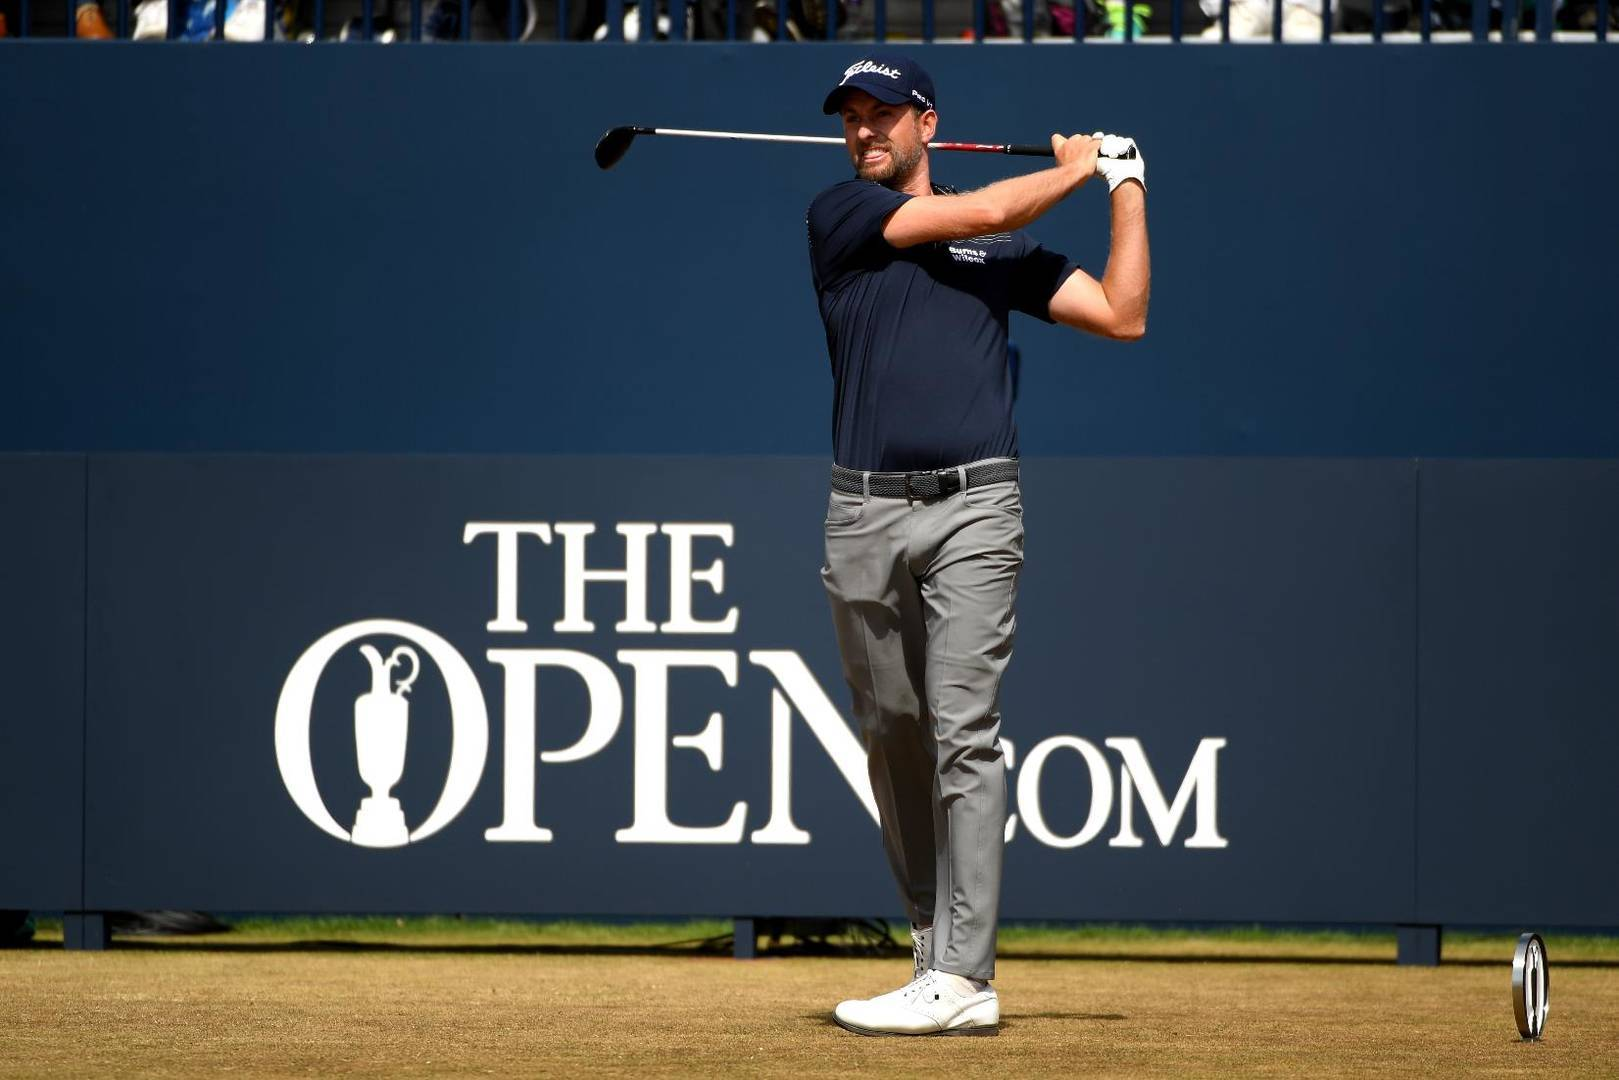 Webb Simpson's player profile for The 148th Open at Royal Portrush